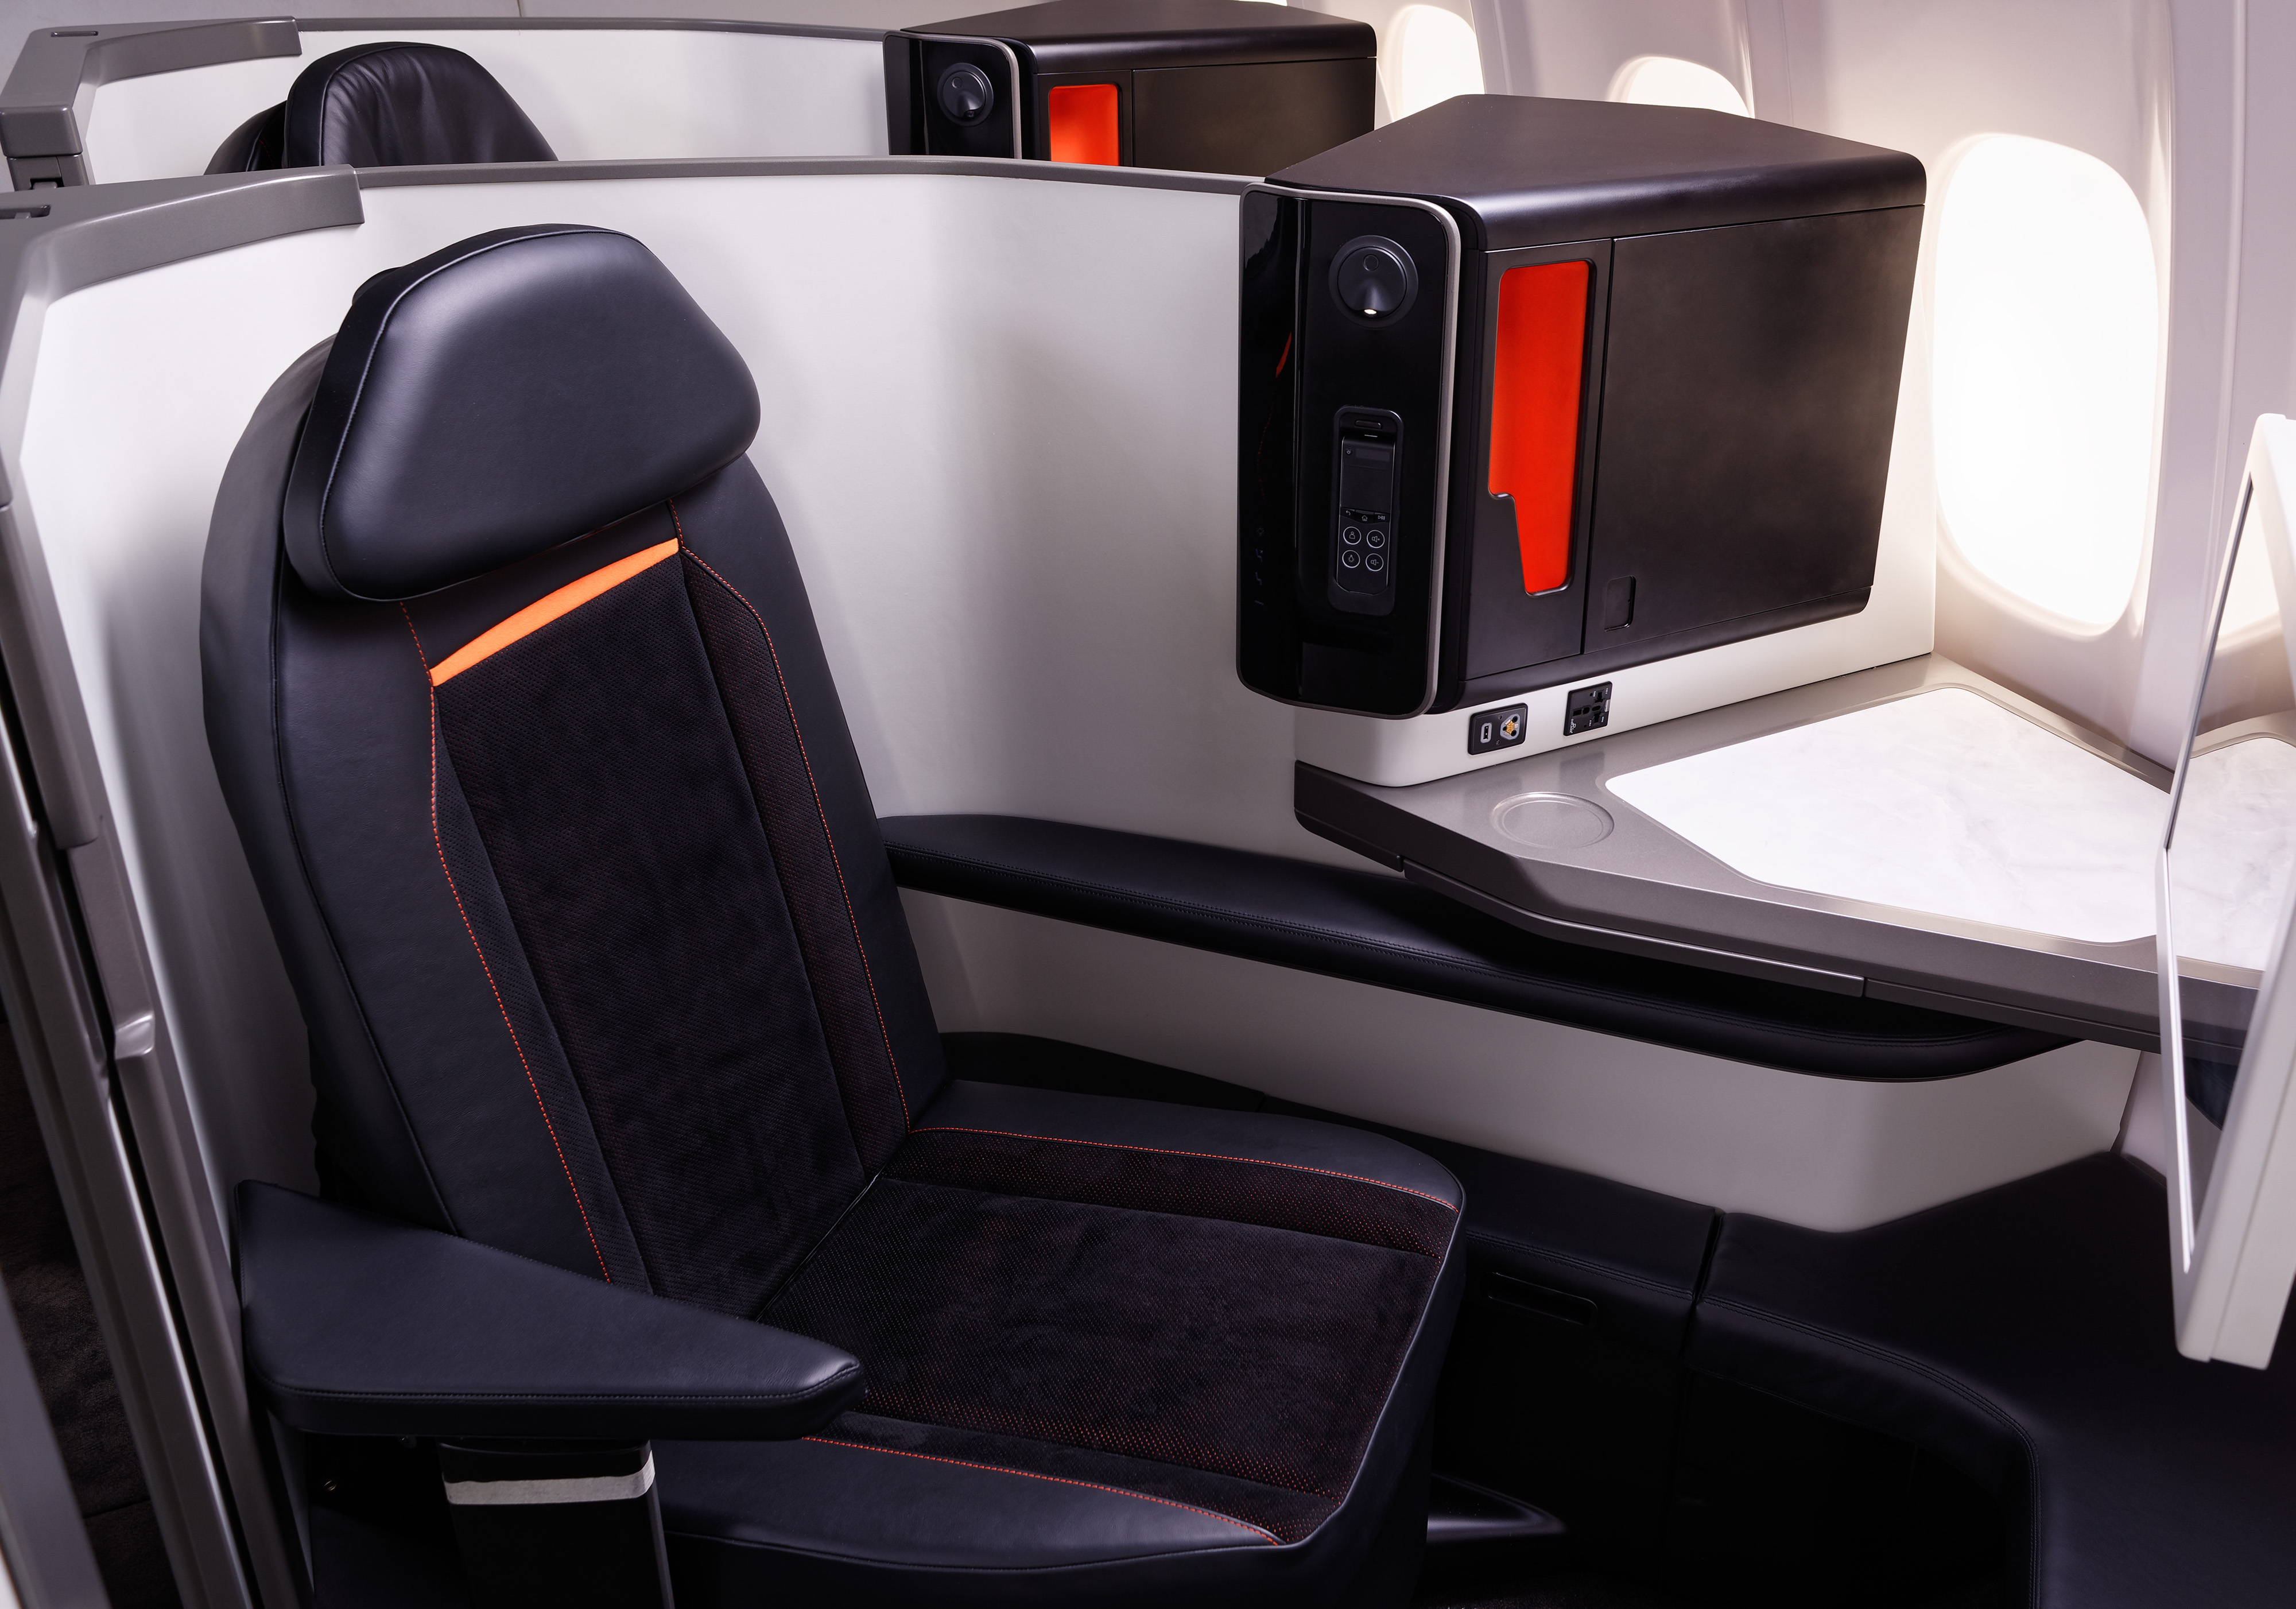 STELIA Aerospace Launches `OPERA', its New Business Class Seat